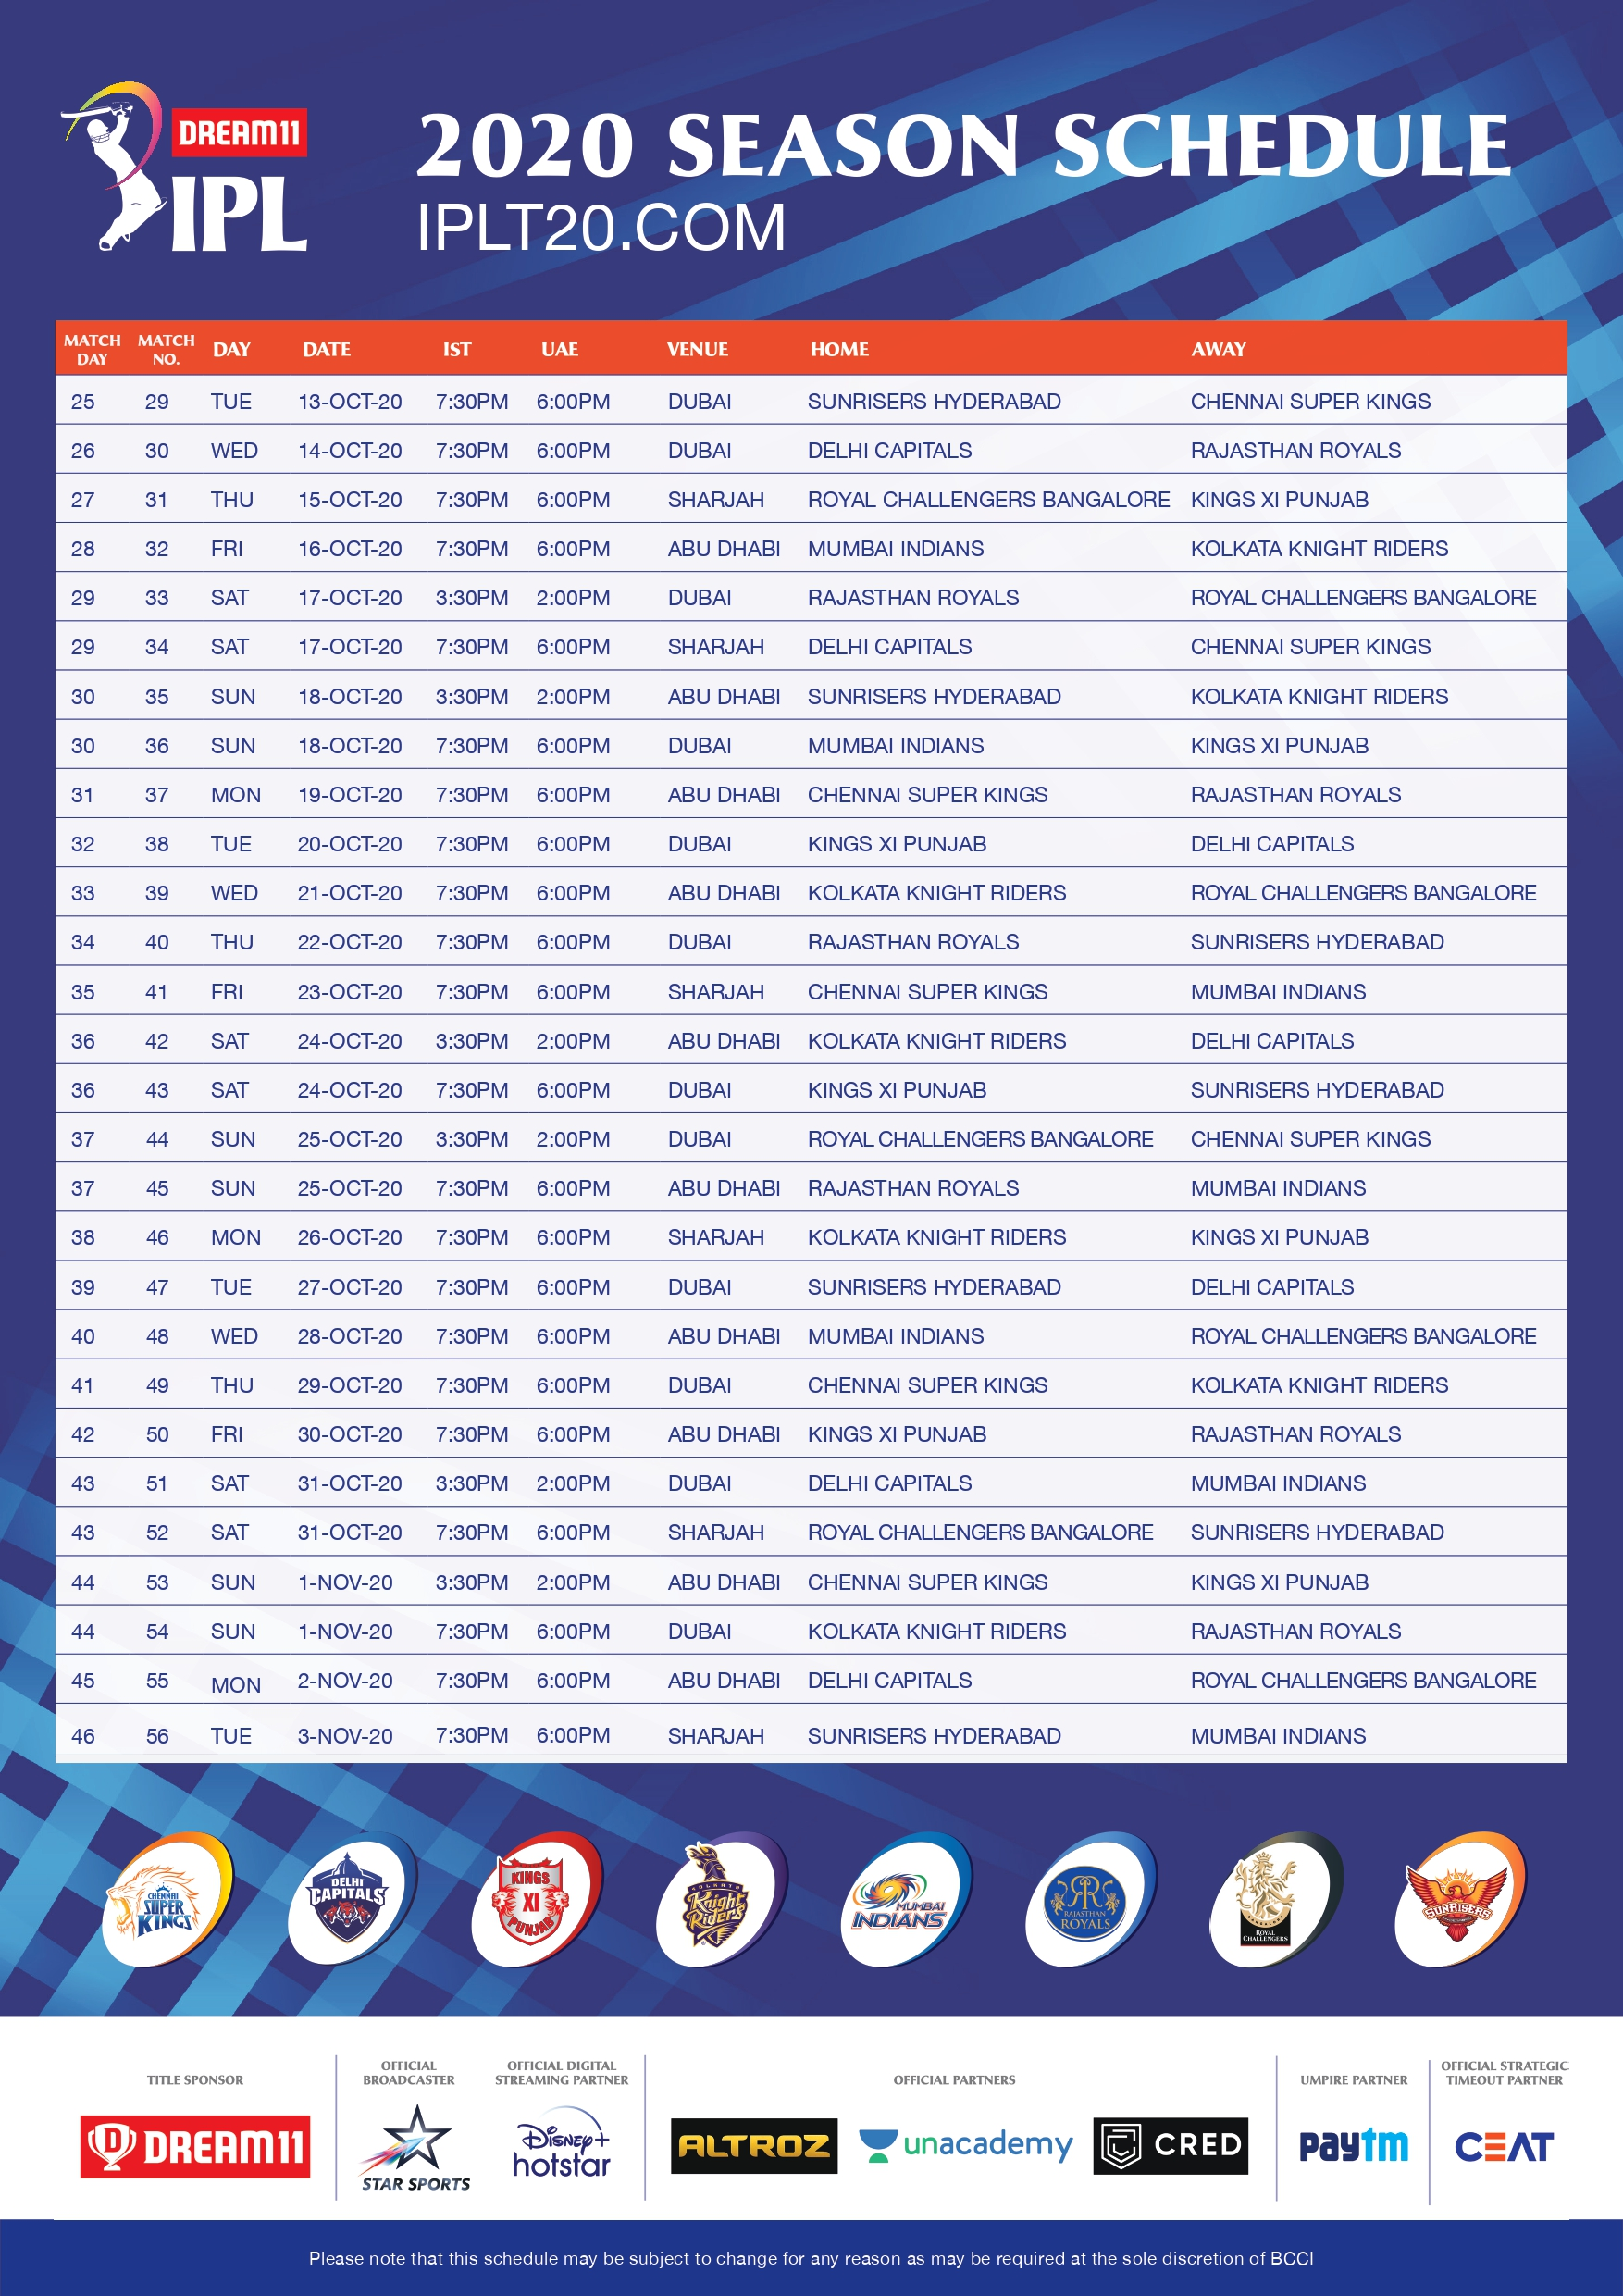 Dream11 IPL 2020 Time Table